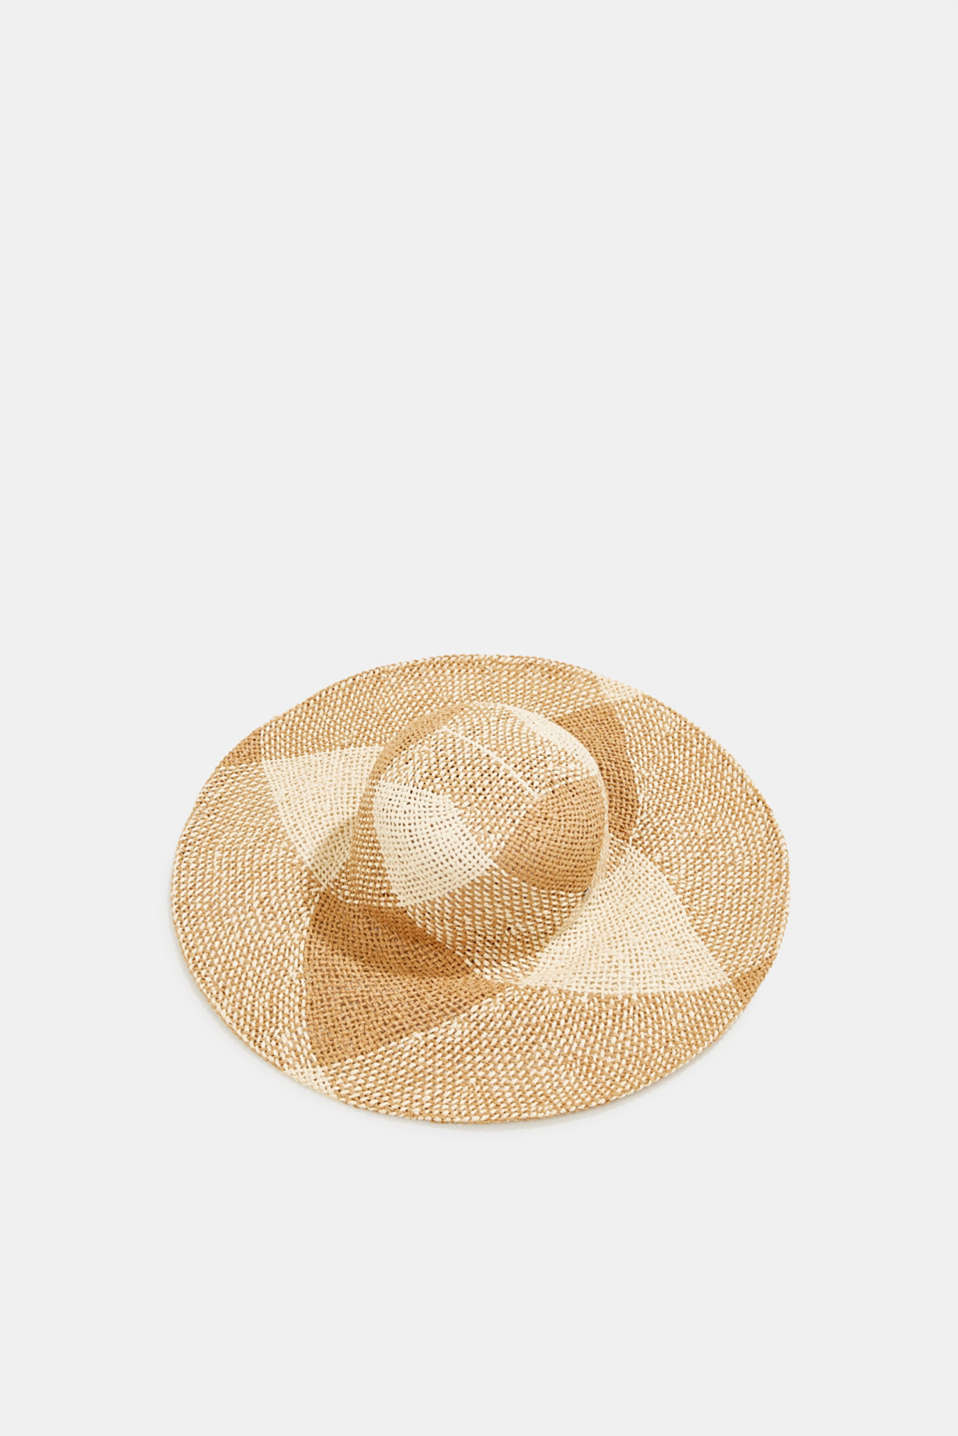 Esprit - Hand-made straw hat